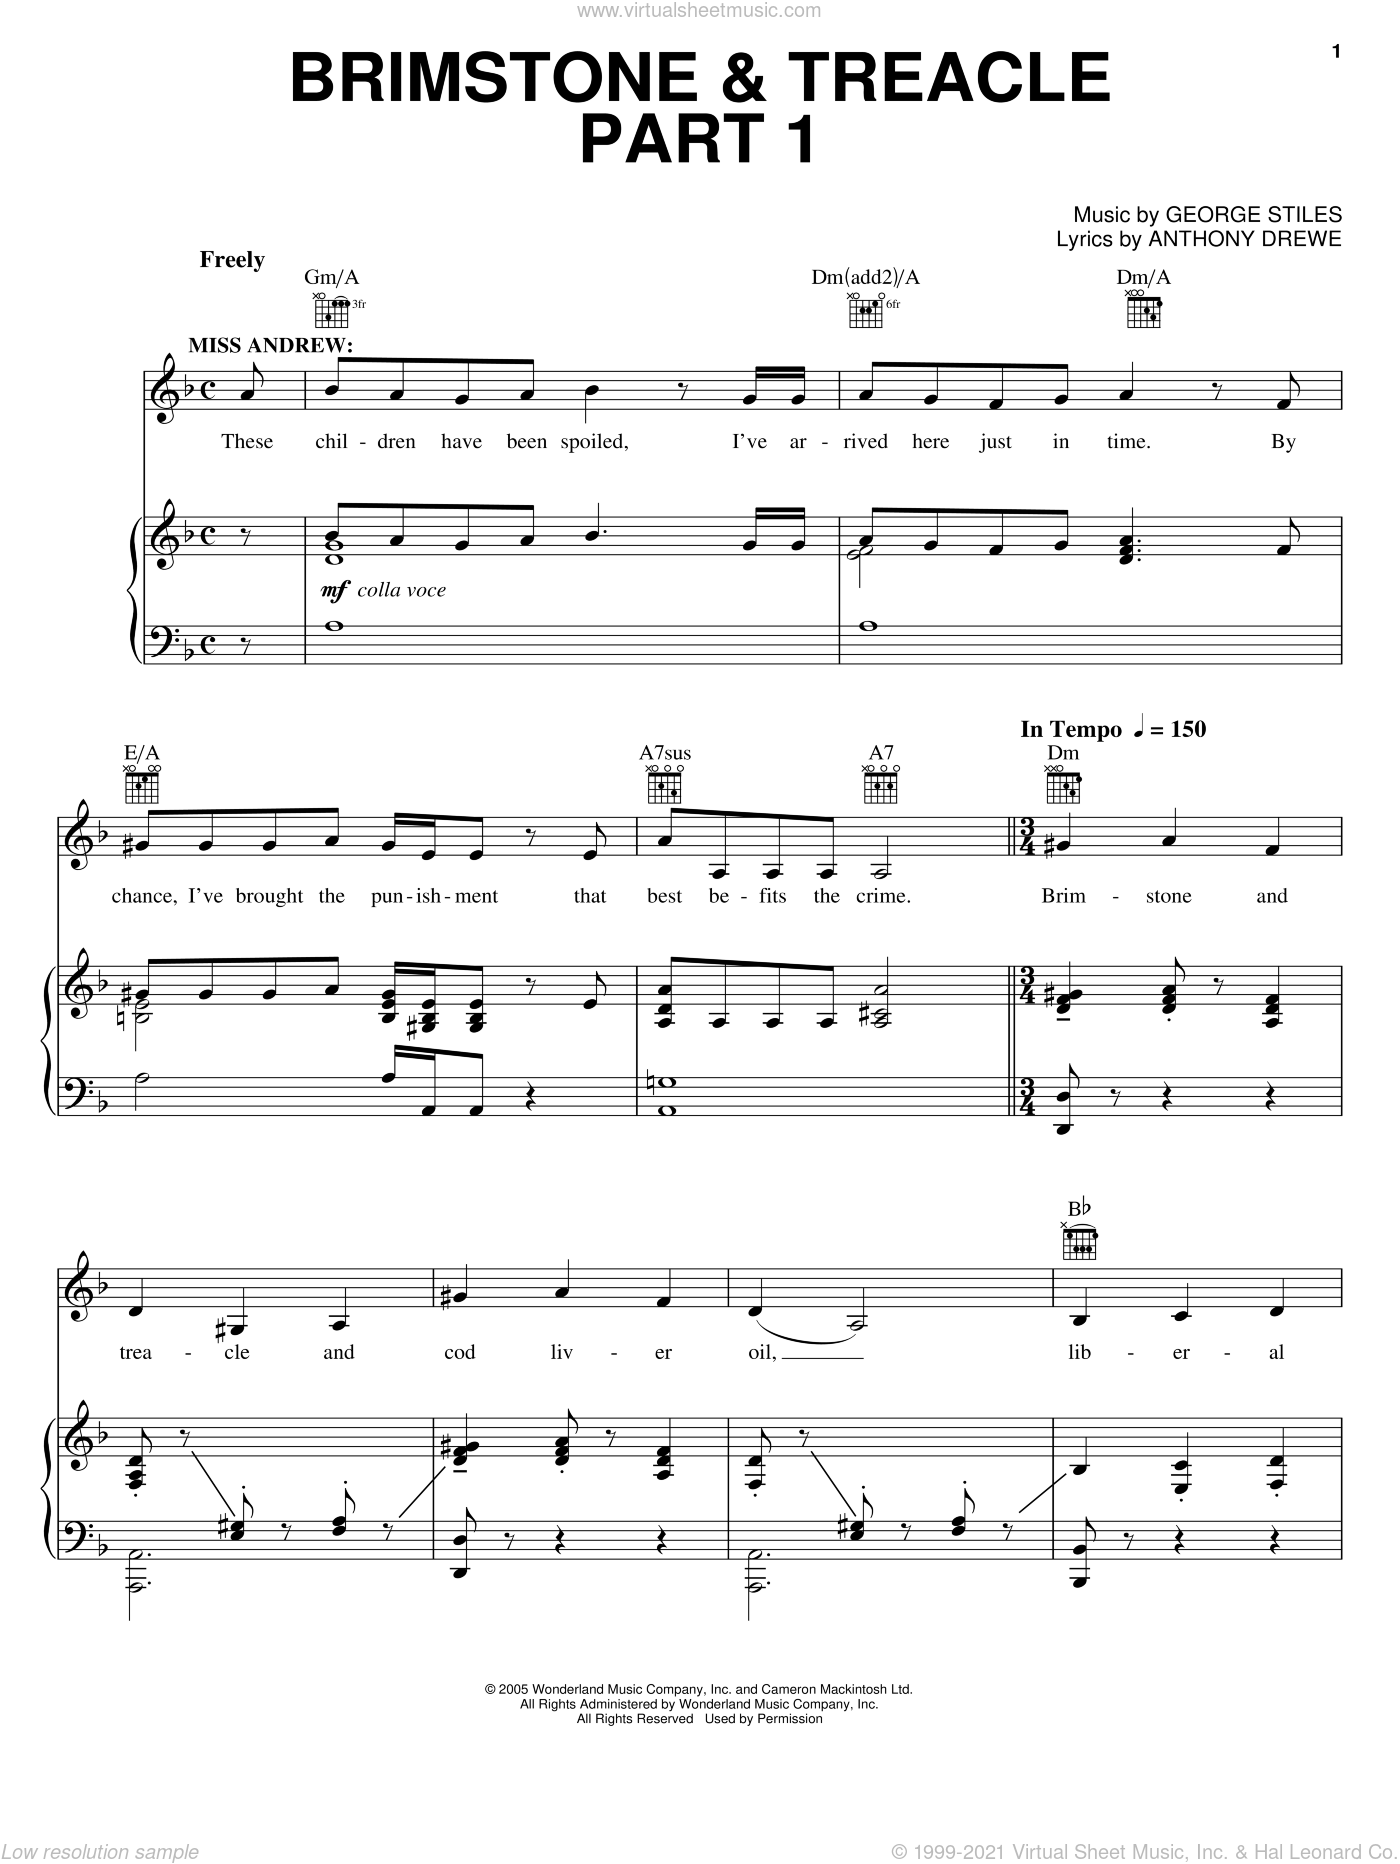 Brimstone and Treacle Part 1 sheet music for voice, piano or guitar by Anthony Drewe and George Stiles, intermediate voice, piano or guitar. Score Image Preview.